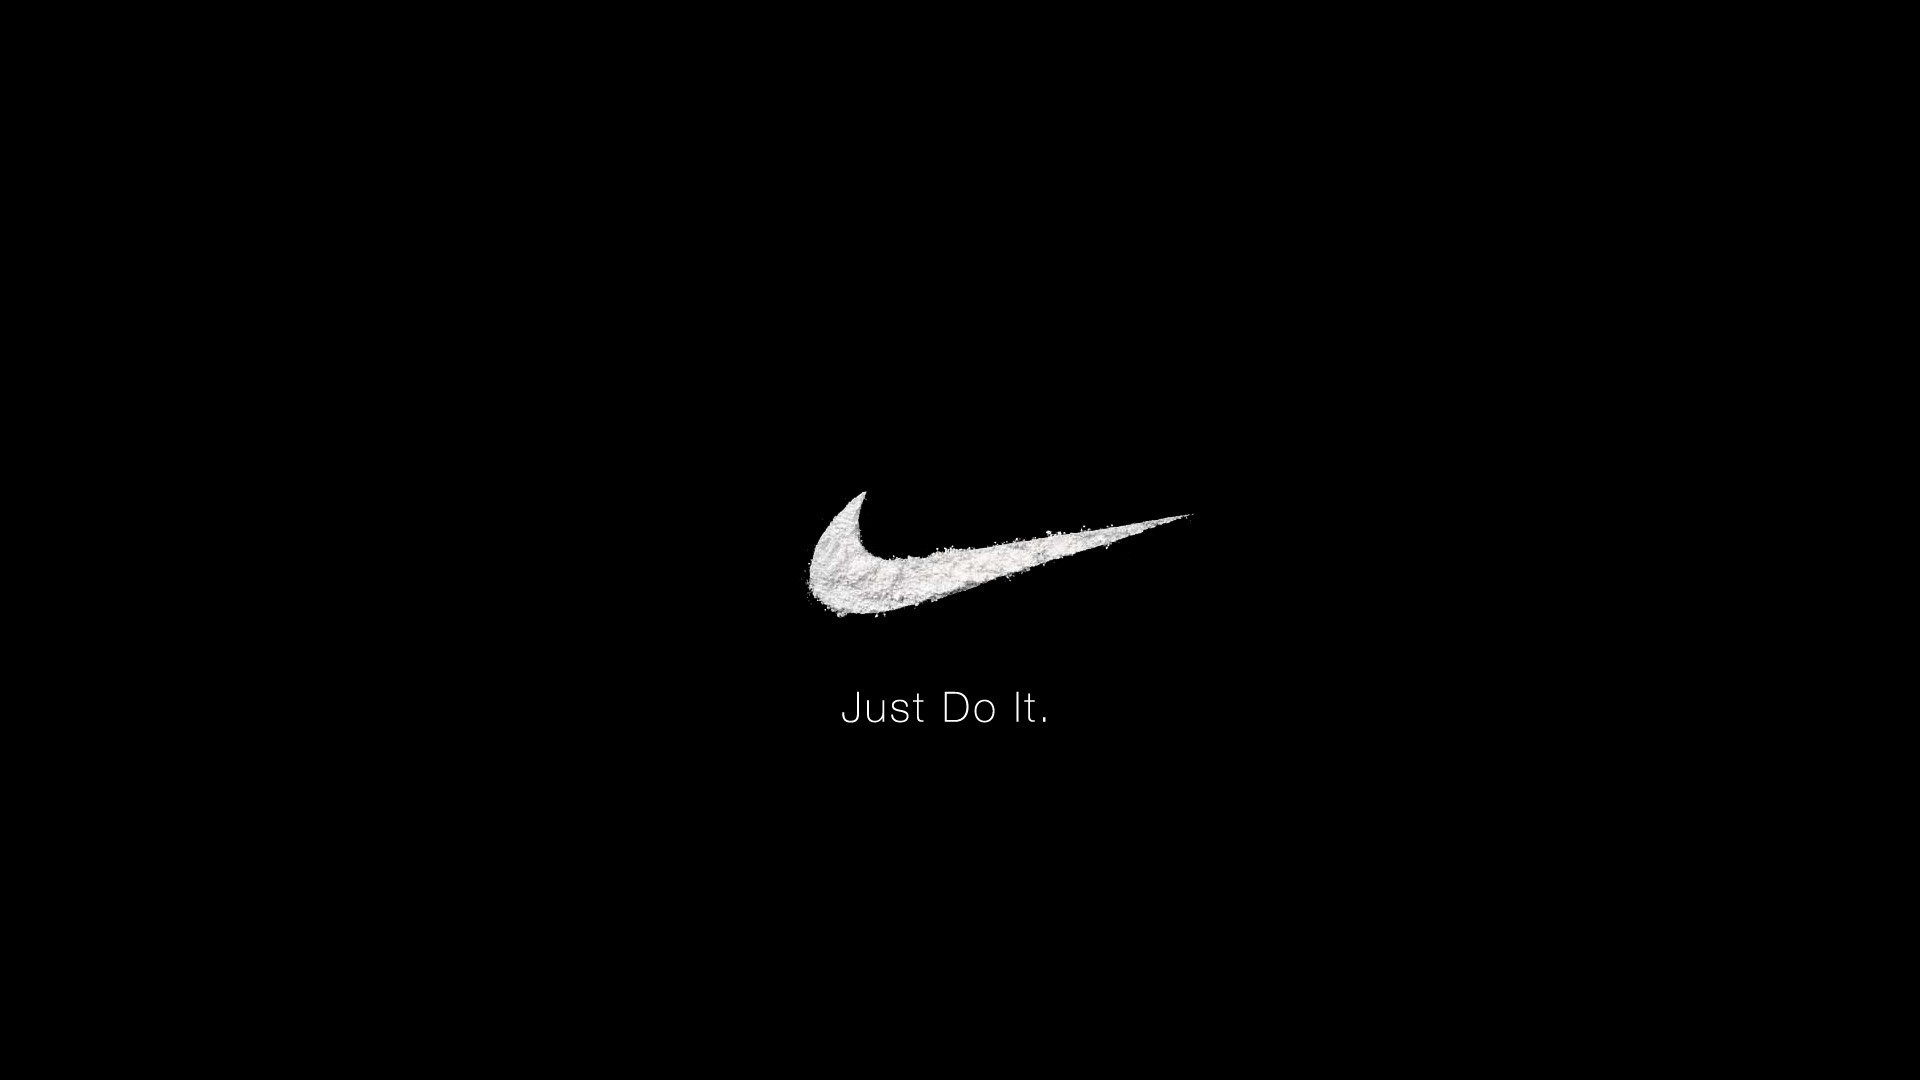 1920x1080 Cool Just Do It Wallpaper